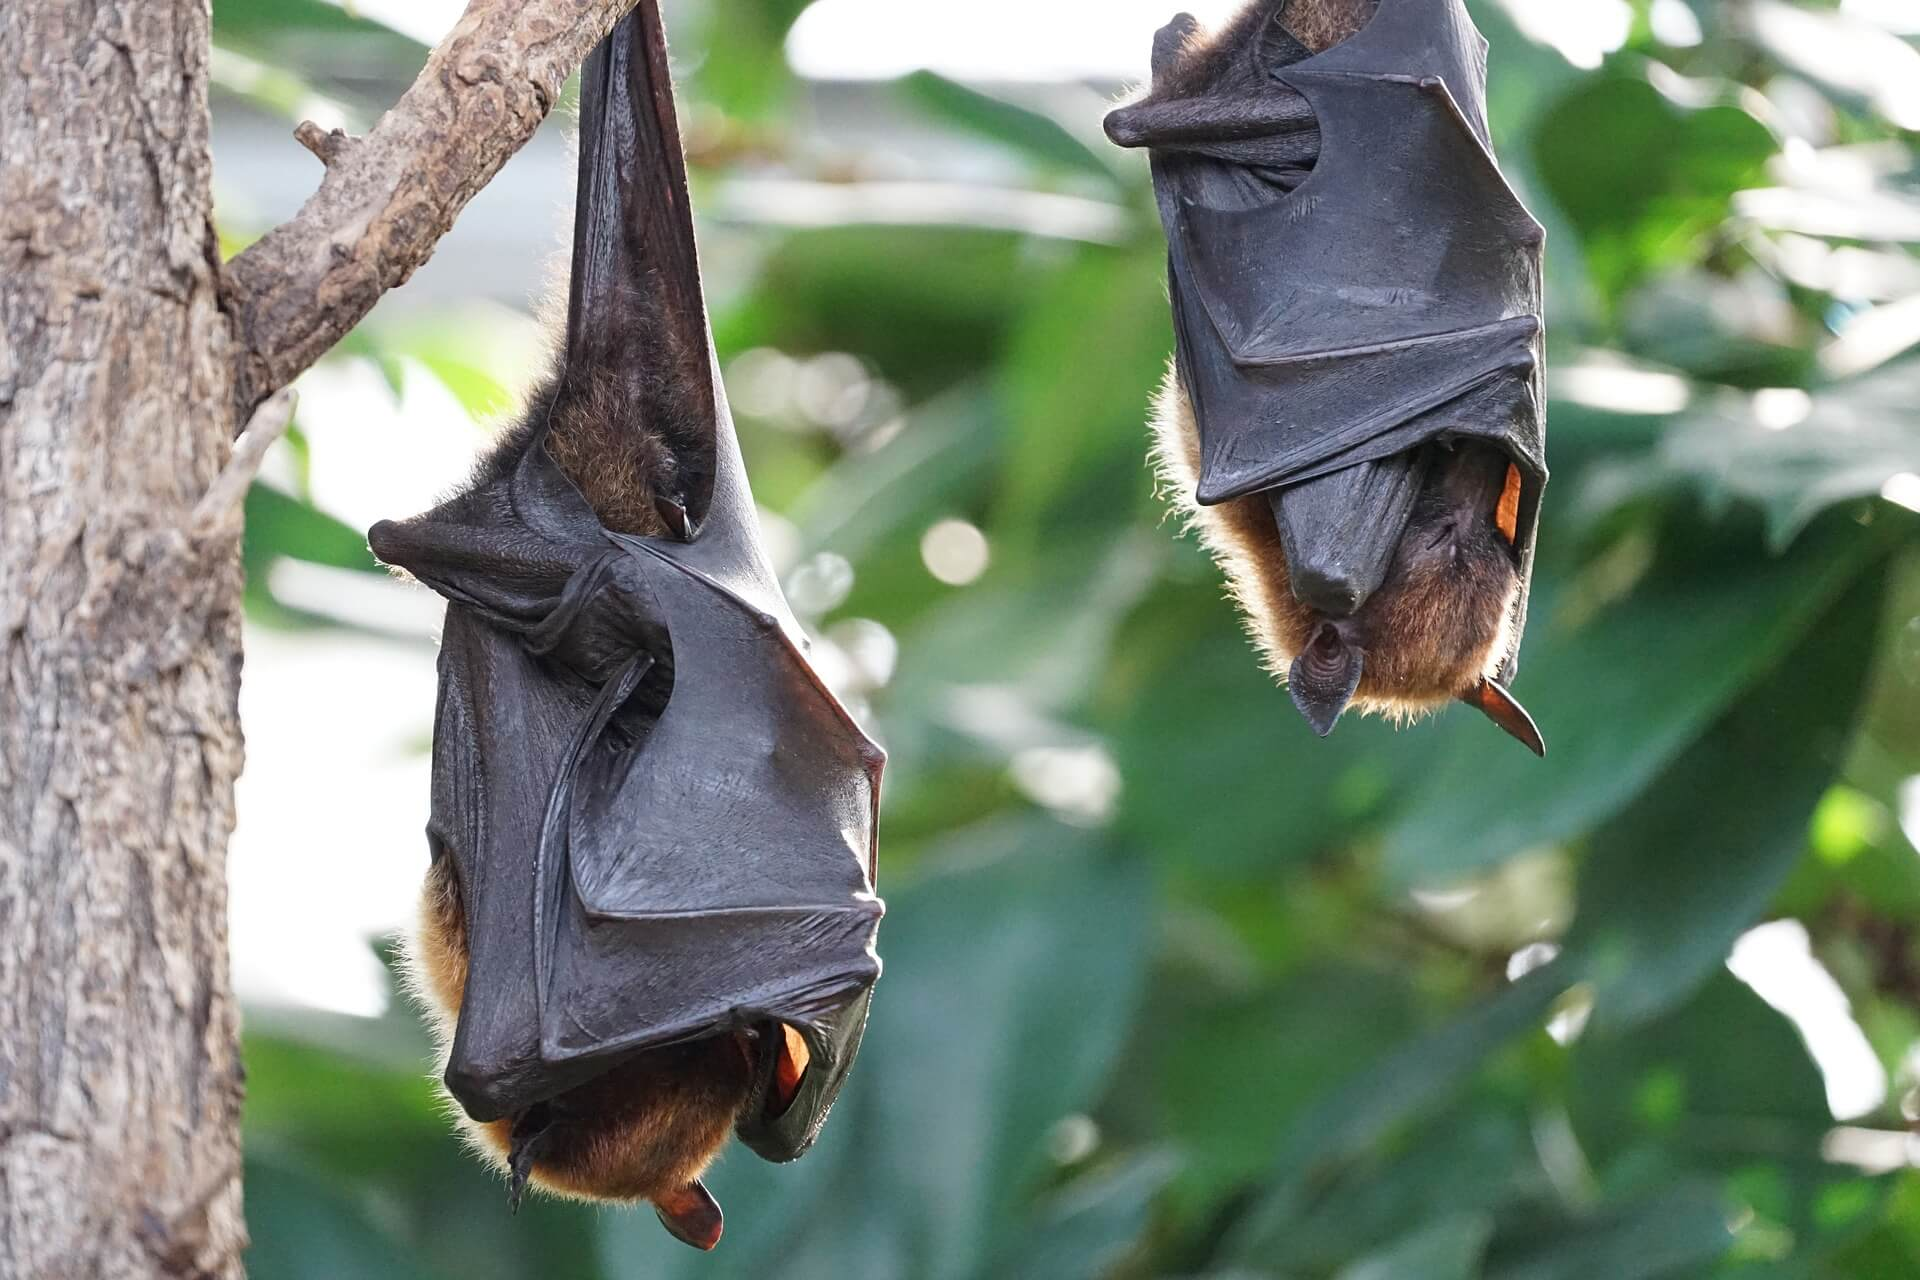 //pixabay.com/en/flying-foxes-bat-tropical-bat-2237209/